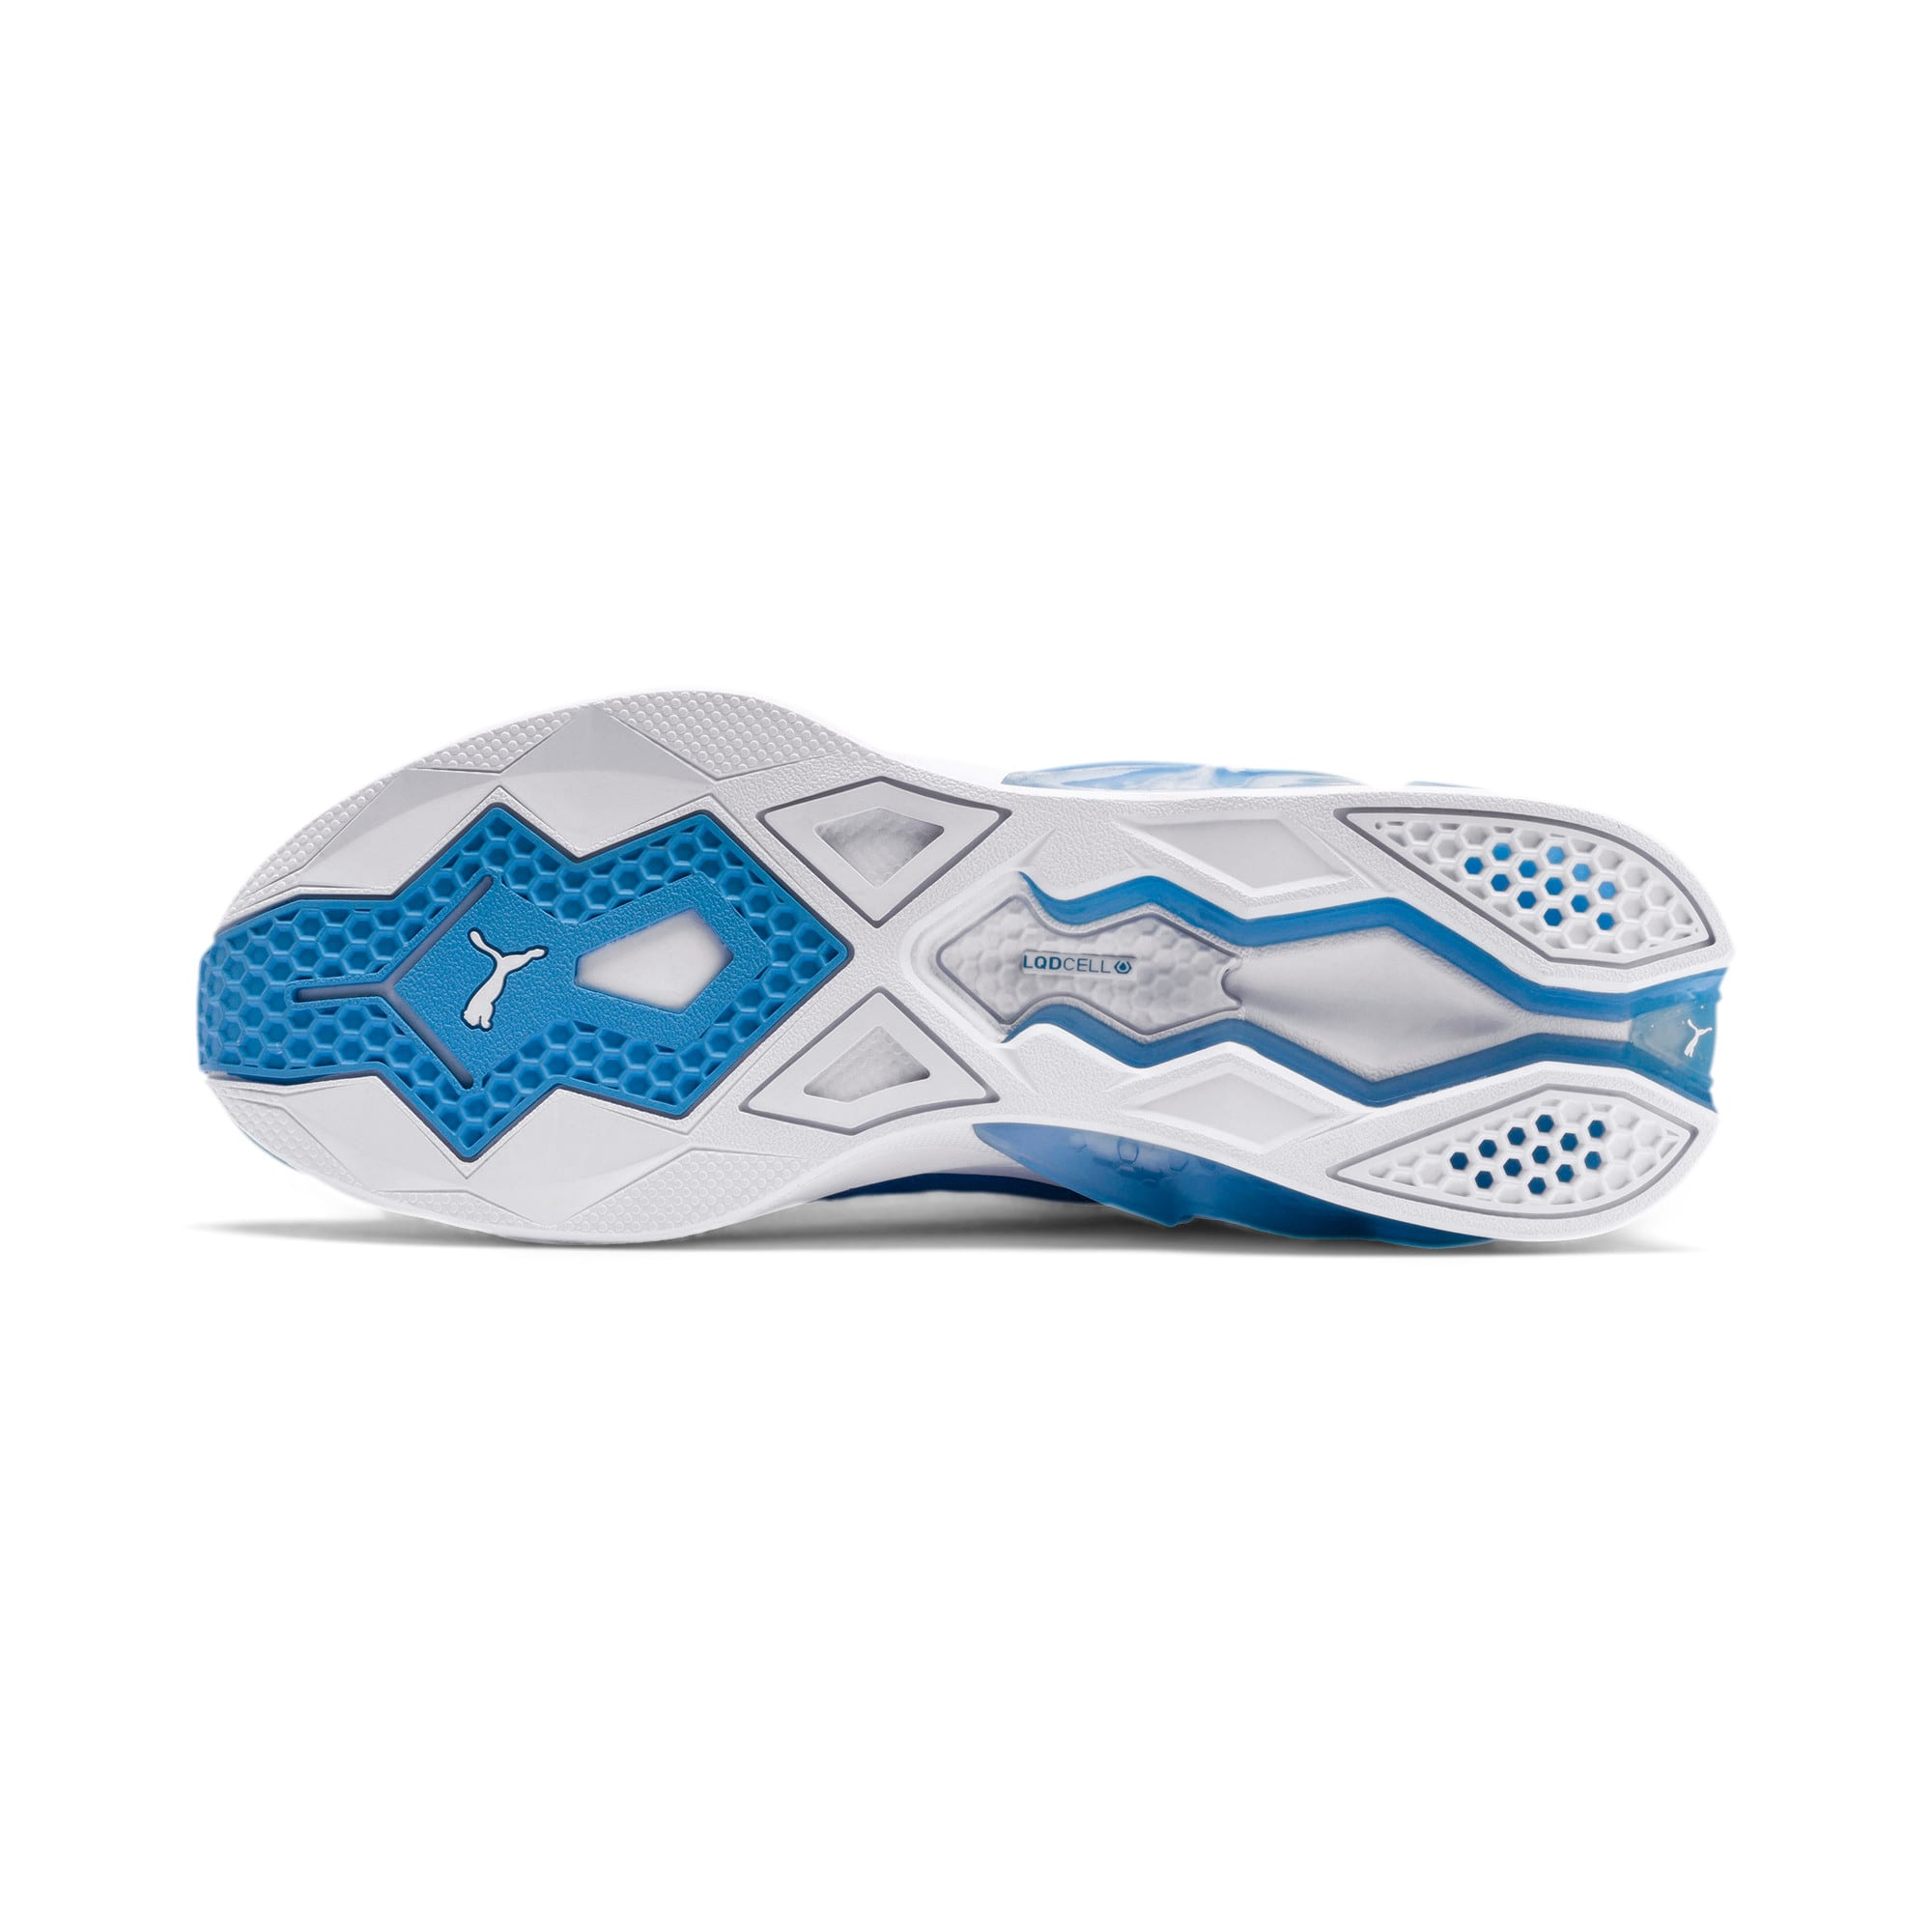 Thumbnail 4 of LQDCELL Origin Men's Training Shoes, Puma White-B Blue-Blz Yellow, medium